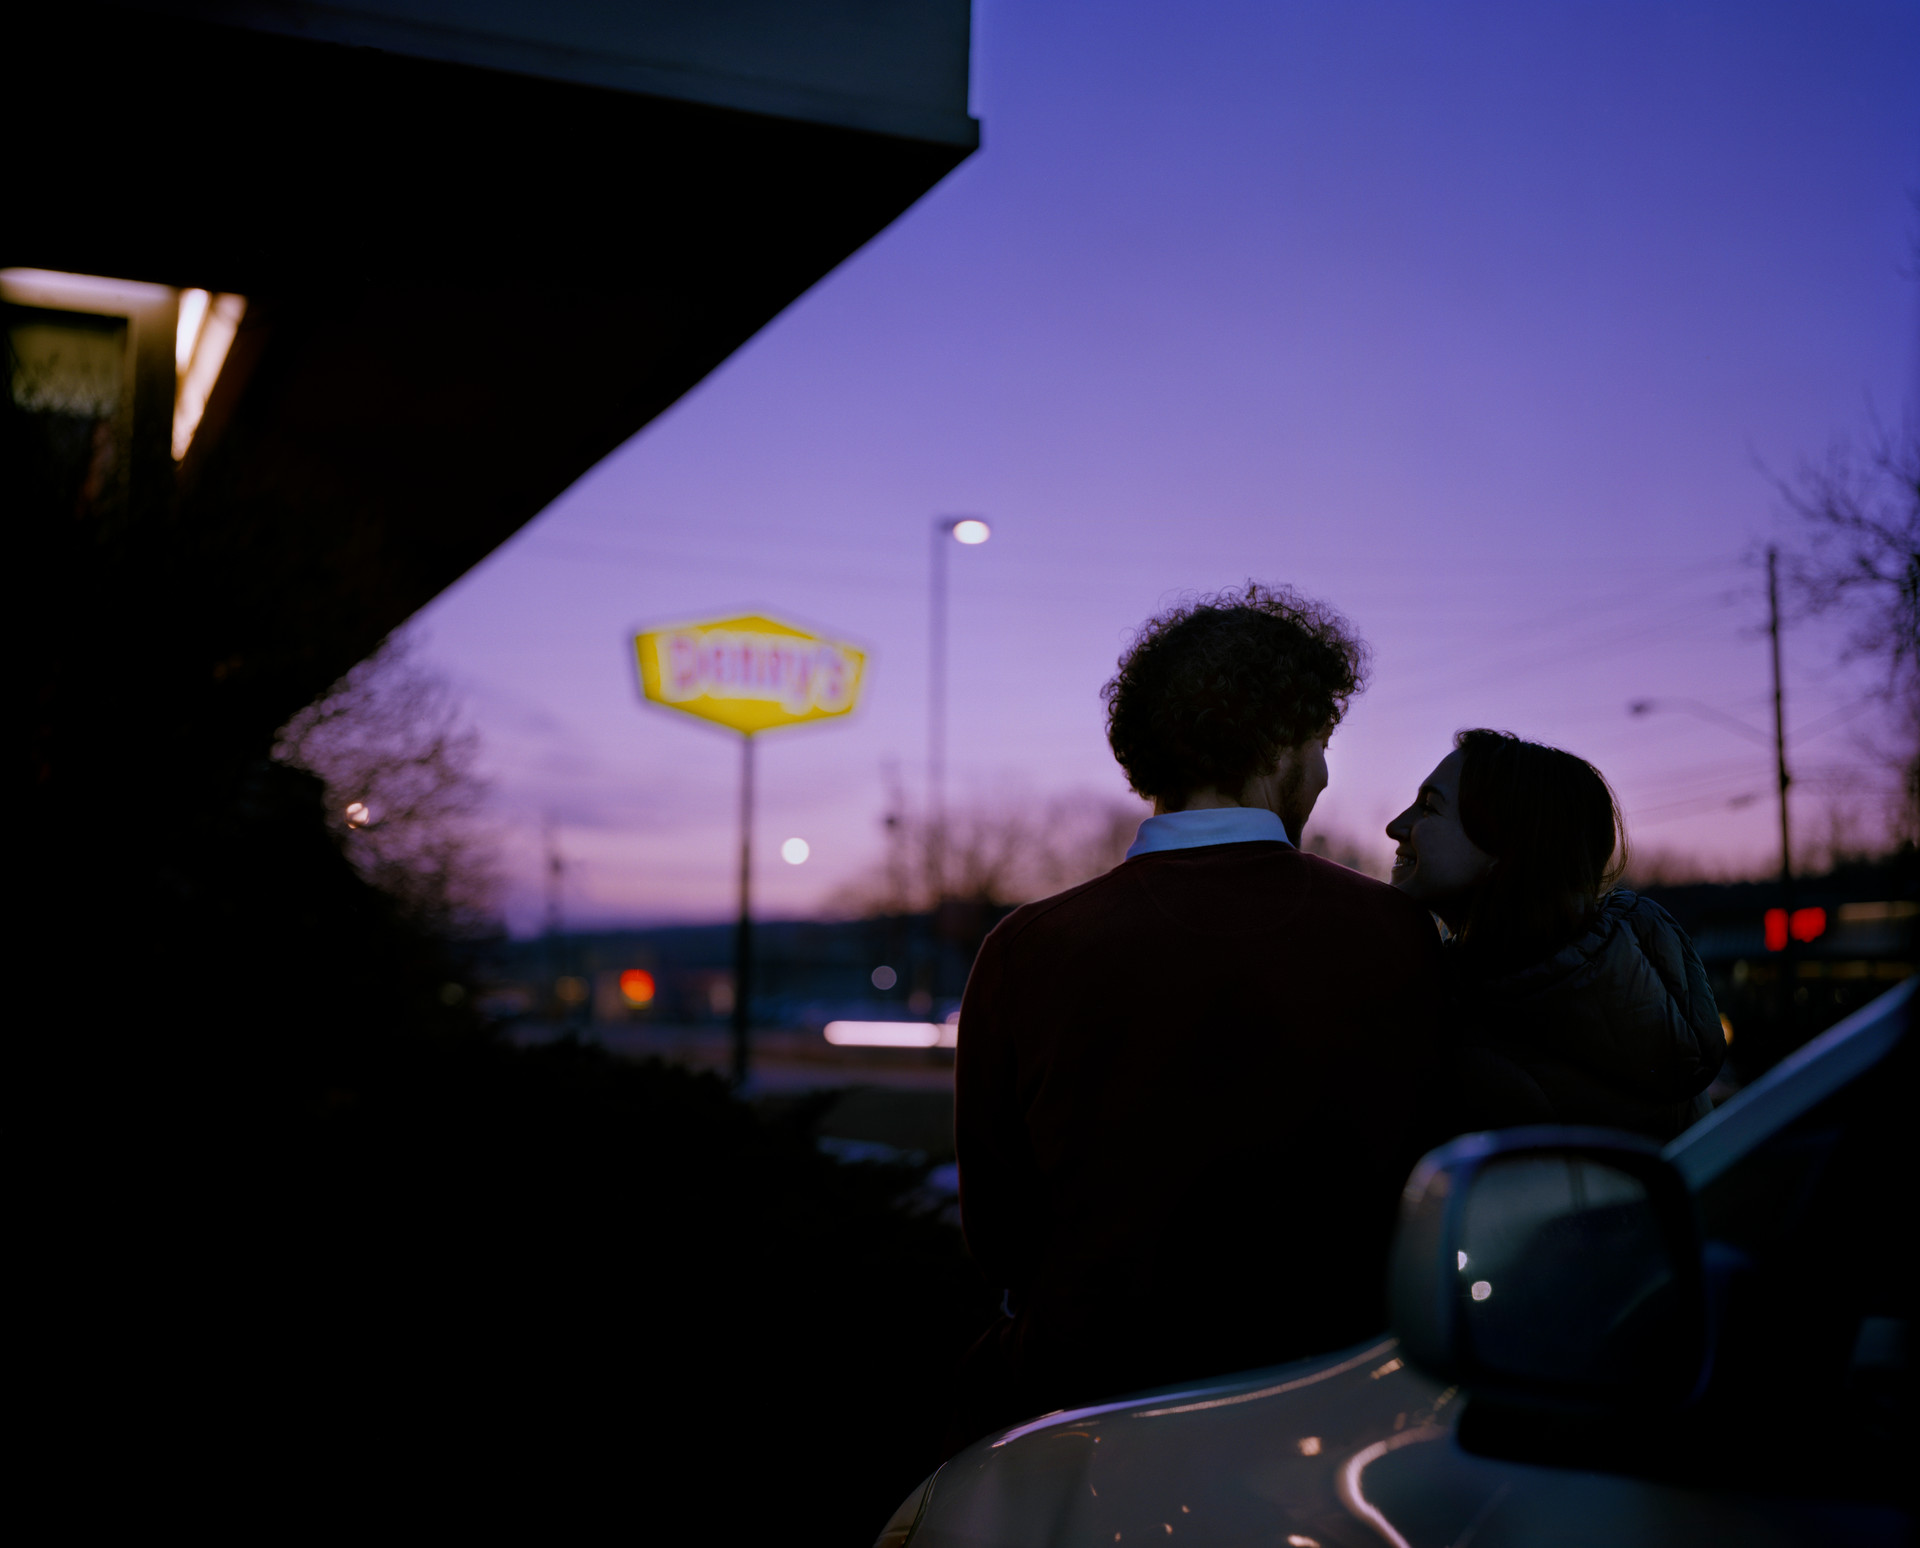 Who Gets Their First Kiss at Denny's?